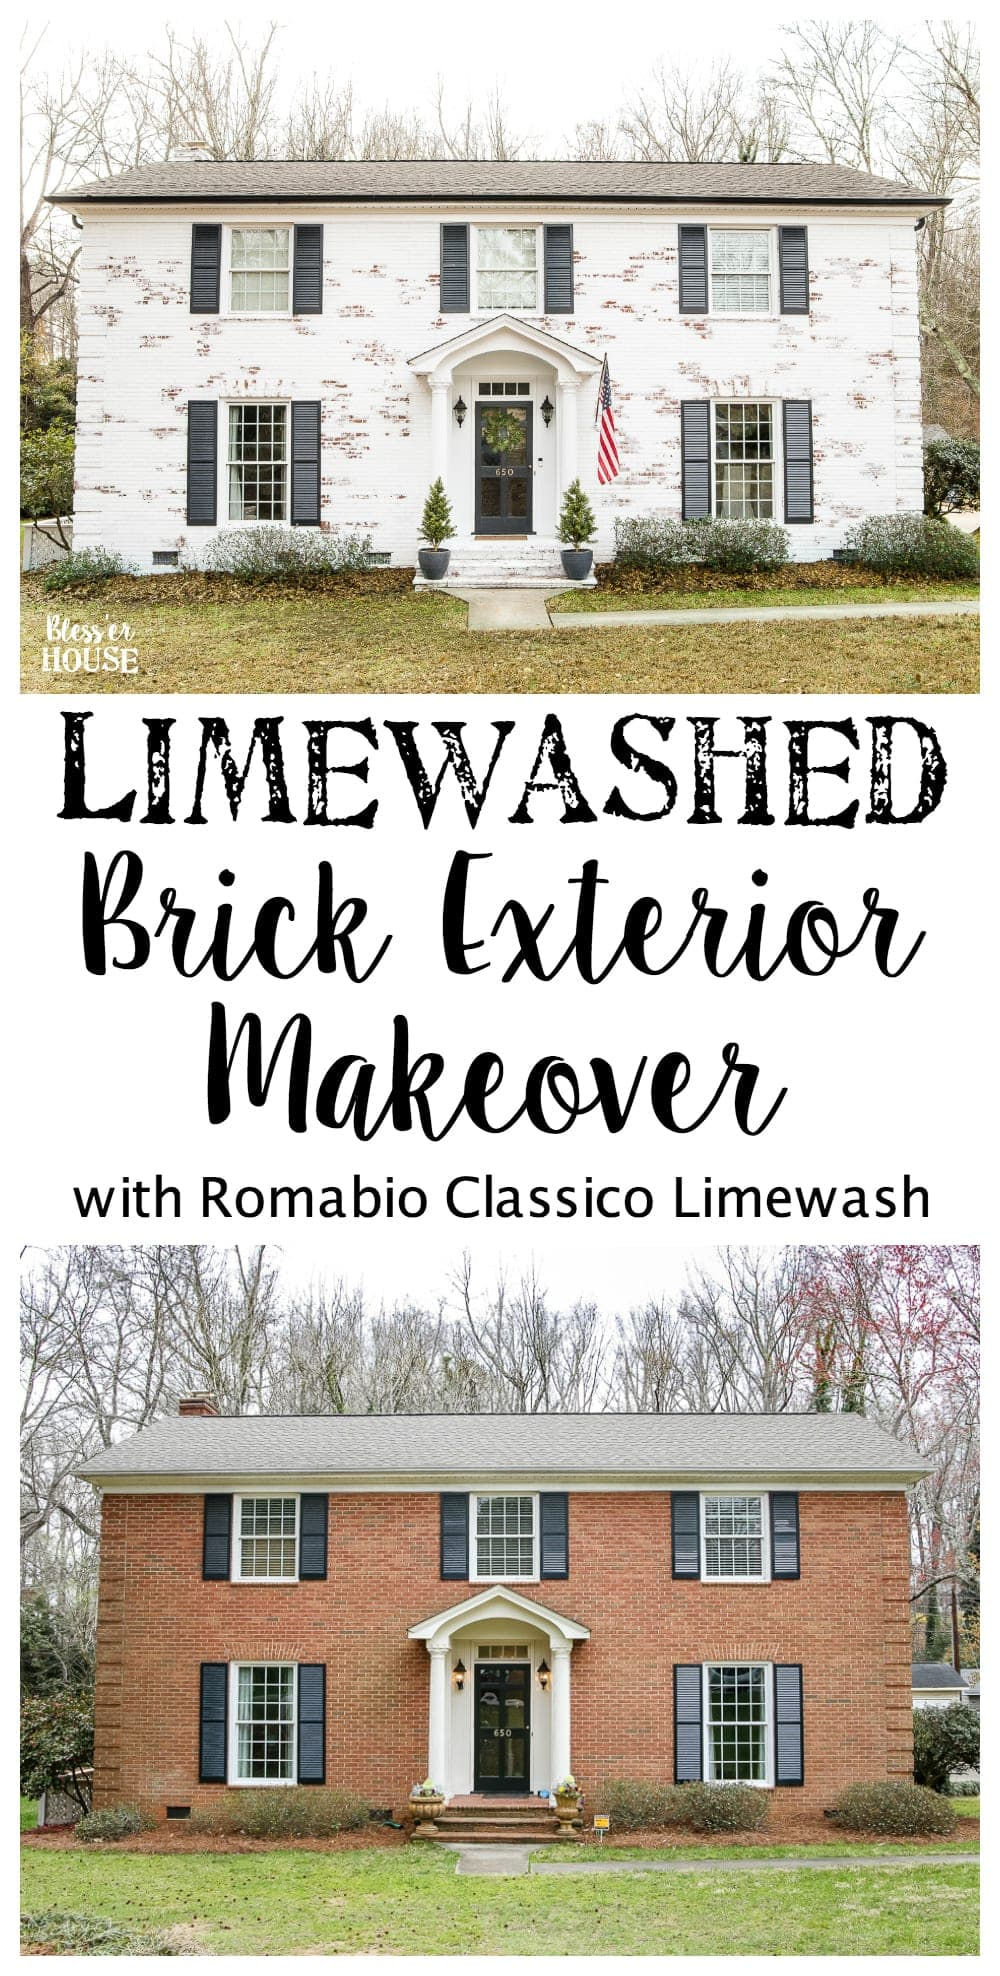 Diy Lime Wash Brick House How To Lime Wash Exterior Brick on lime wash kitchen, lime wash pix, lime wash stone, lime wash colonial, lime paint brick house, lime wash traditional home, lime wash paint recipe, lime wash stucco shower, lime wash cement, lime washed brick, lime wash examples, lime washing brick interior,